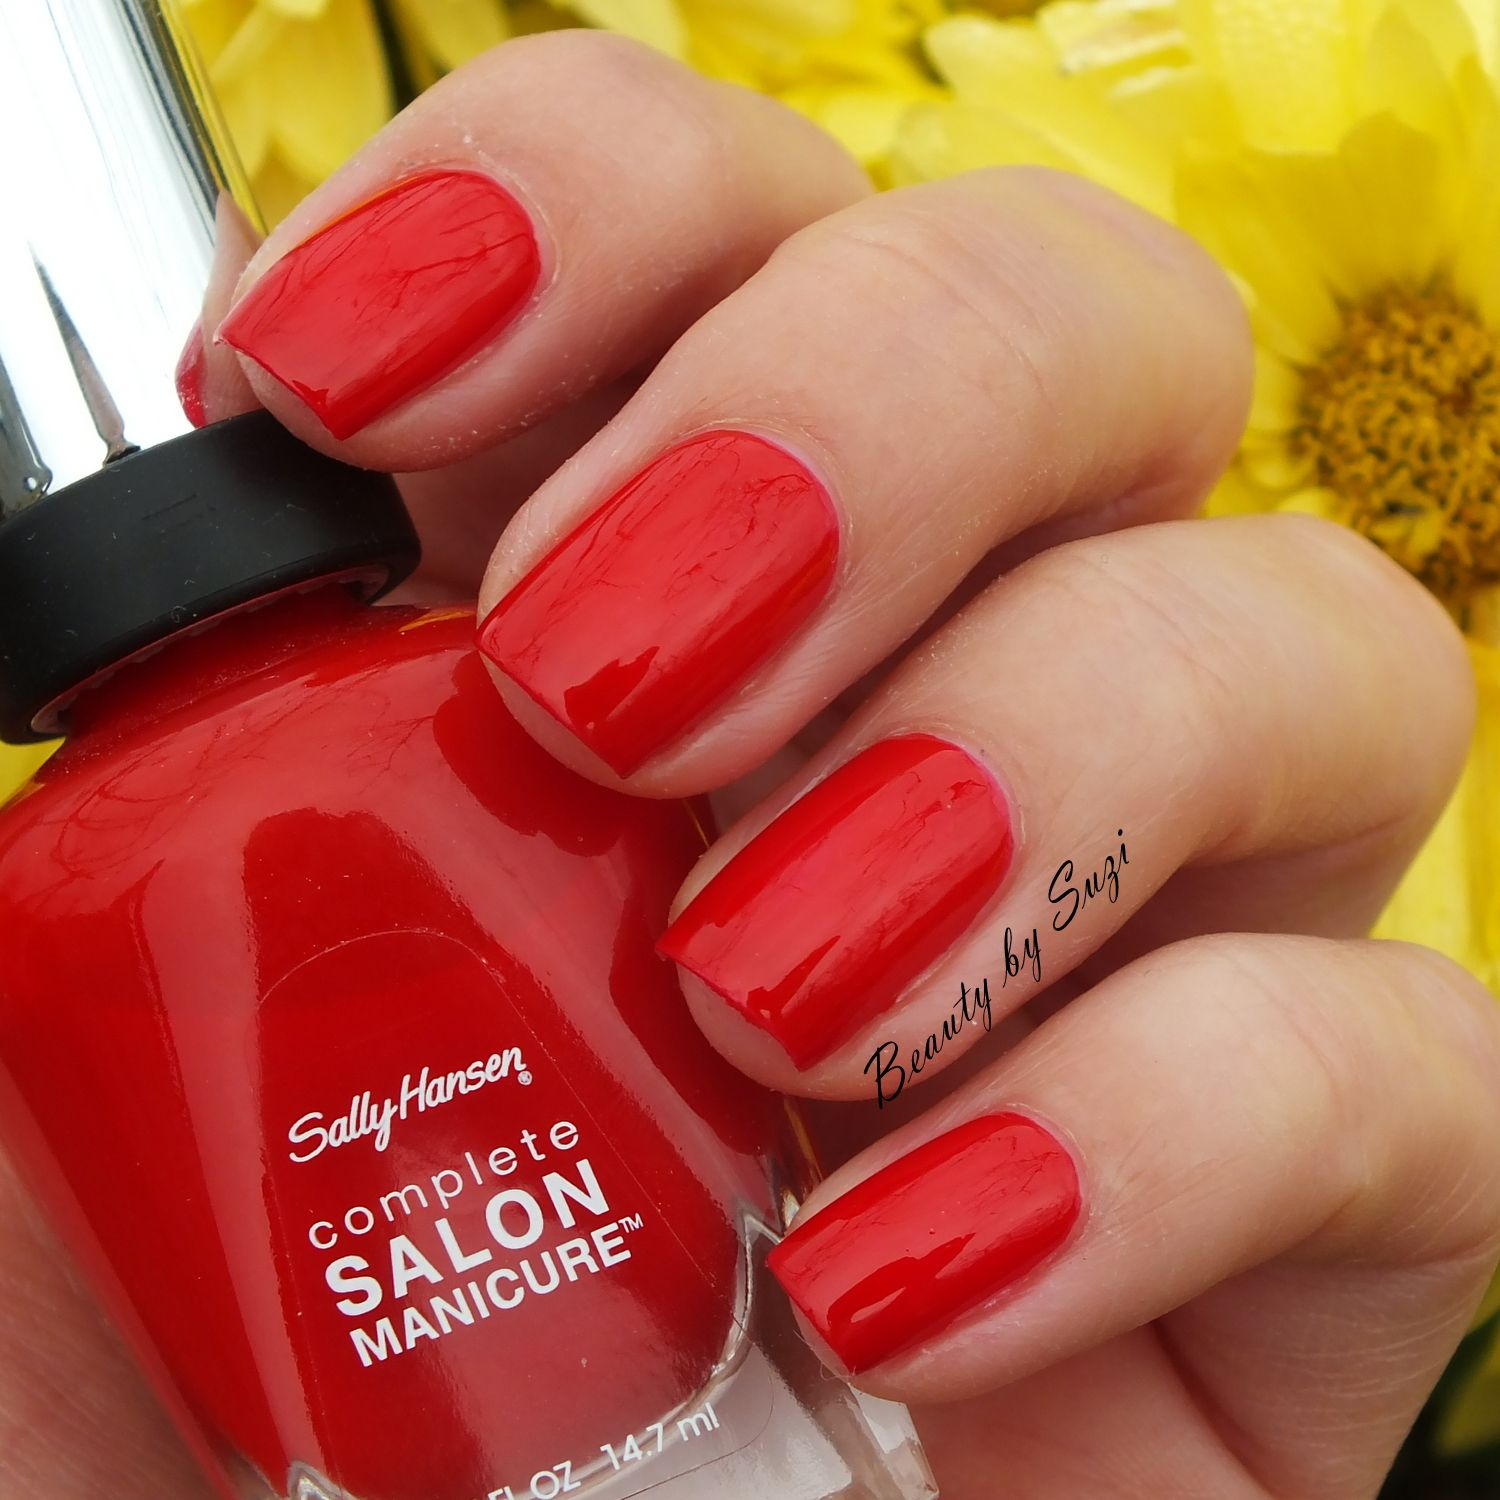 Sally Hansen Complete Salon Manicure, 570 Right Said Red